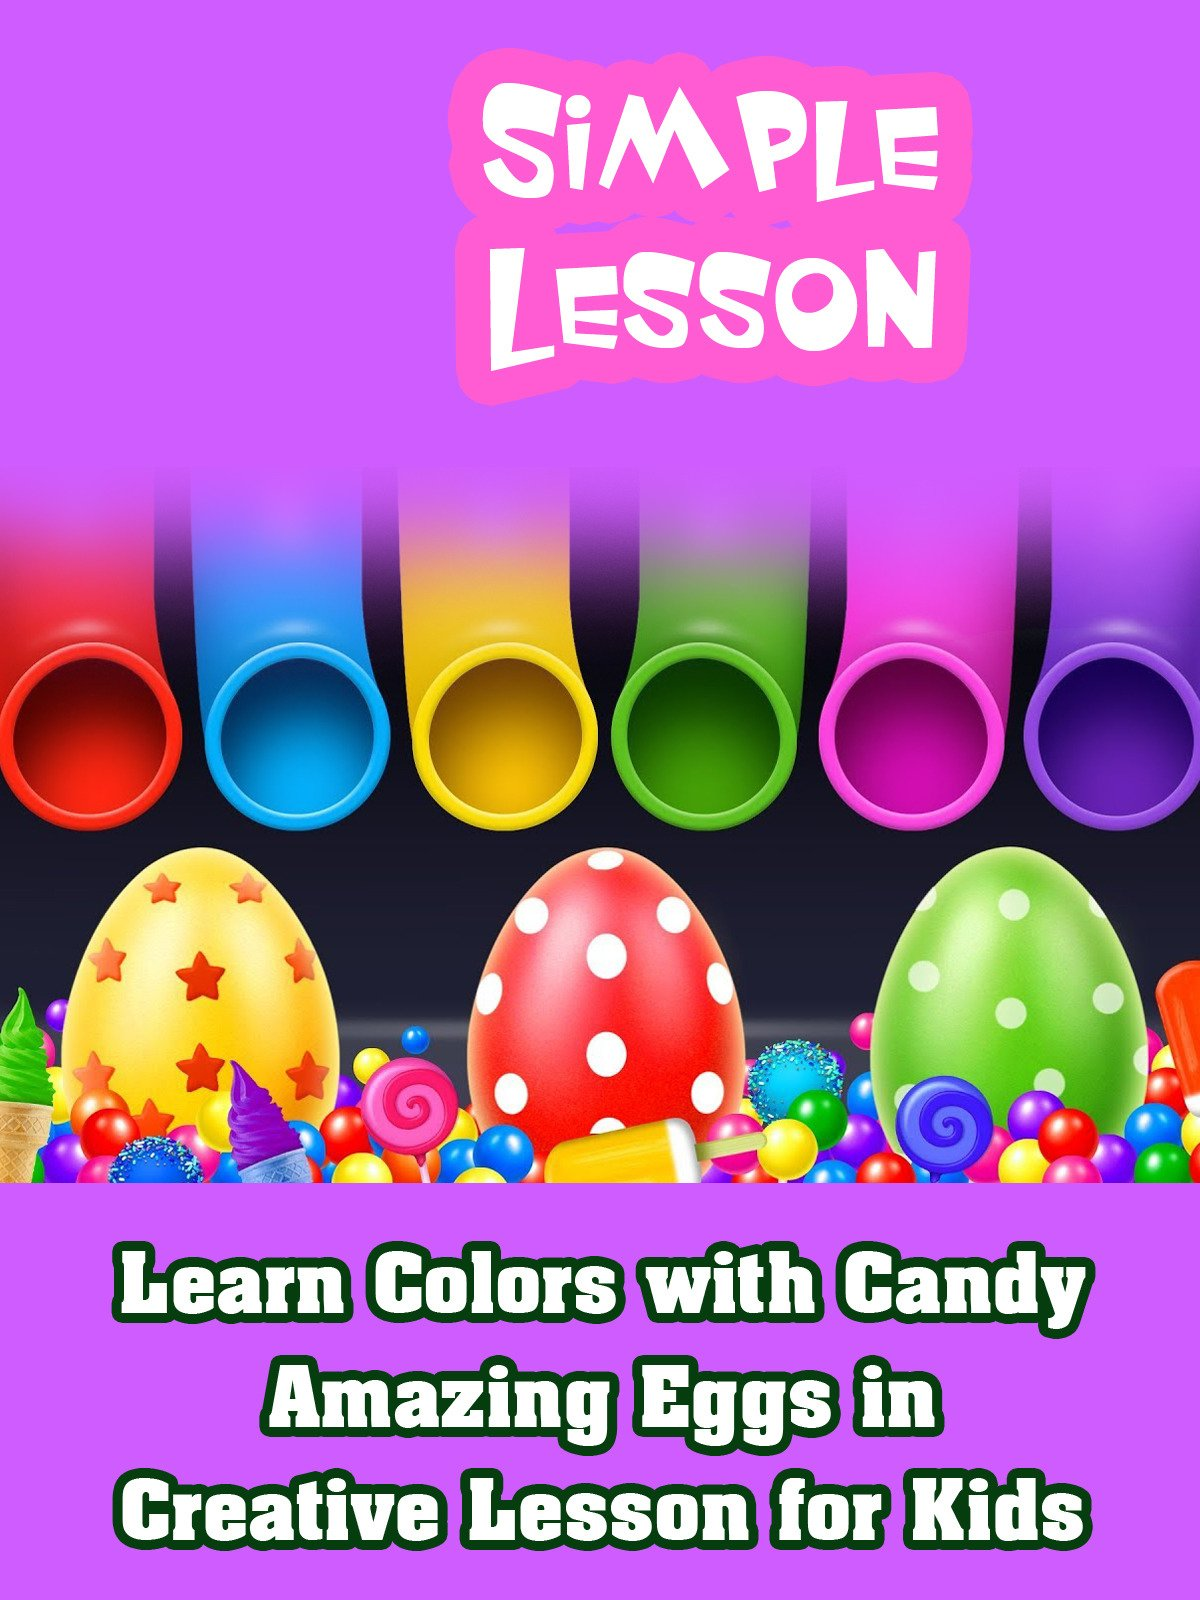 Learn Colors with Candy Amazing Eggs in Creative Lesson for Kids